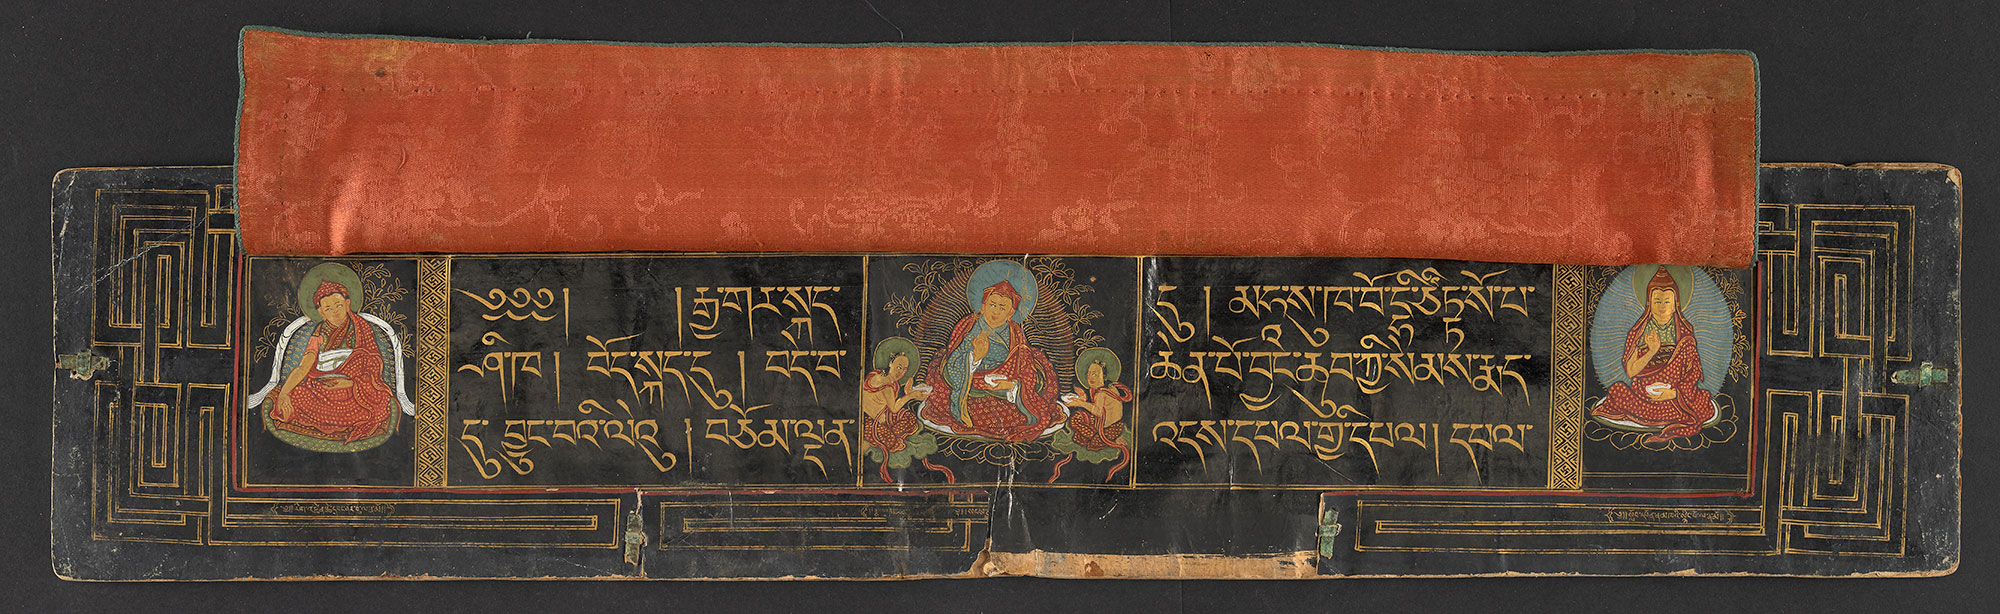 Collected Tantras of the Ancient Tradition, Or 15217, volume 1, f1v. The miniatures in the individual volumes show a portrait of Katog Rigdzin Tsewang Norbu (1698–1755) who was one of the most eminent Lamas of the School of the Ancients during his time.